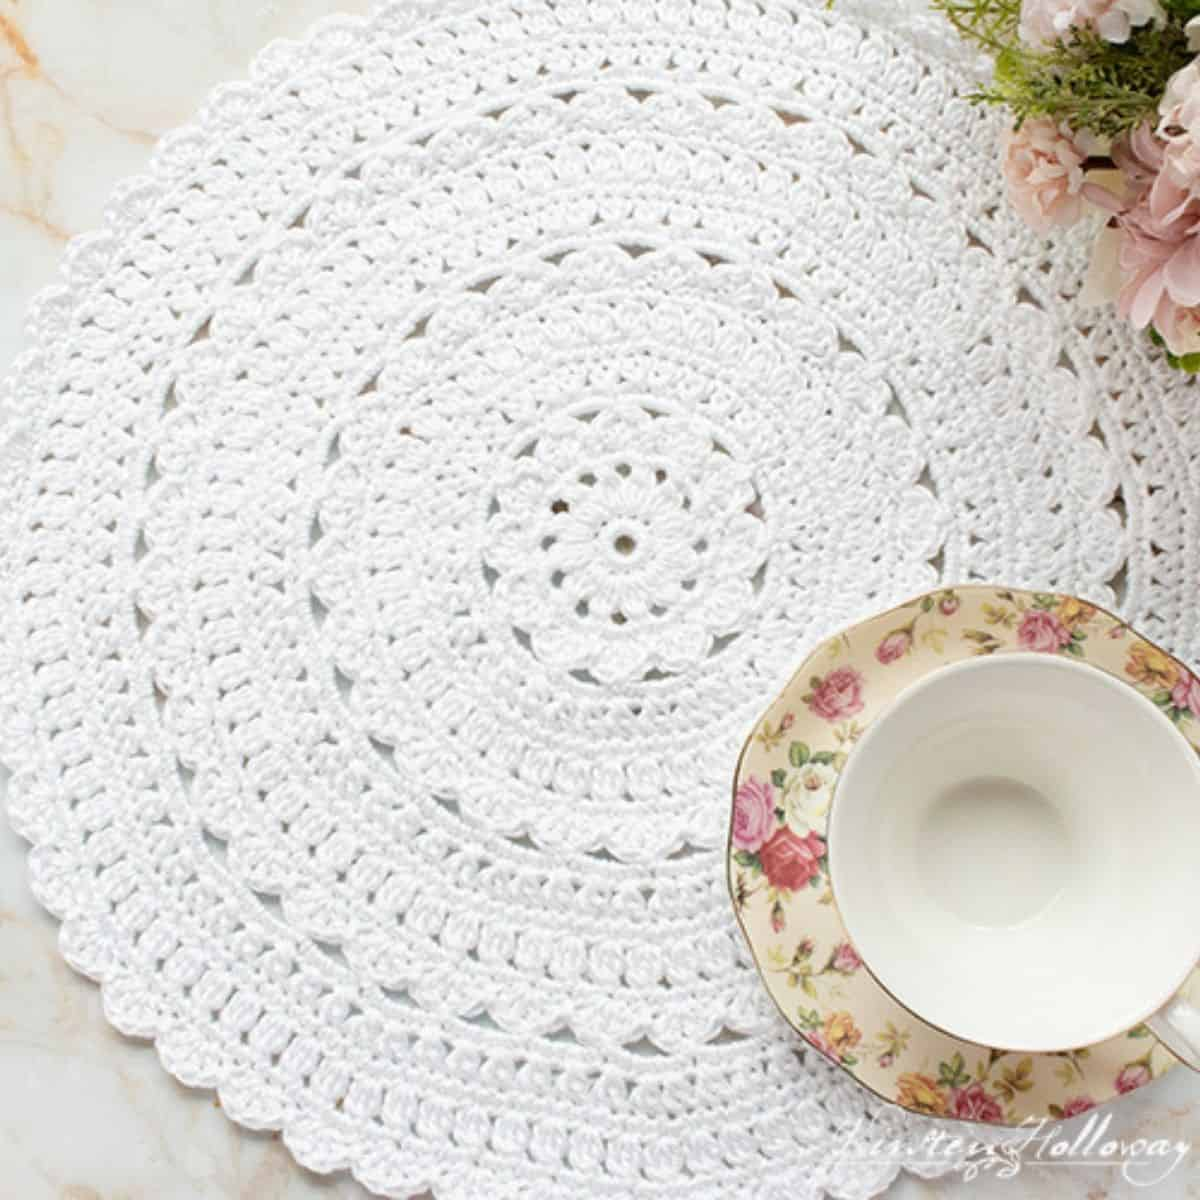 gorgeous white placemat with tea cup sitting on top